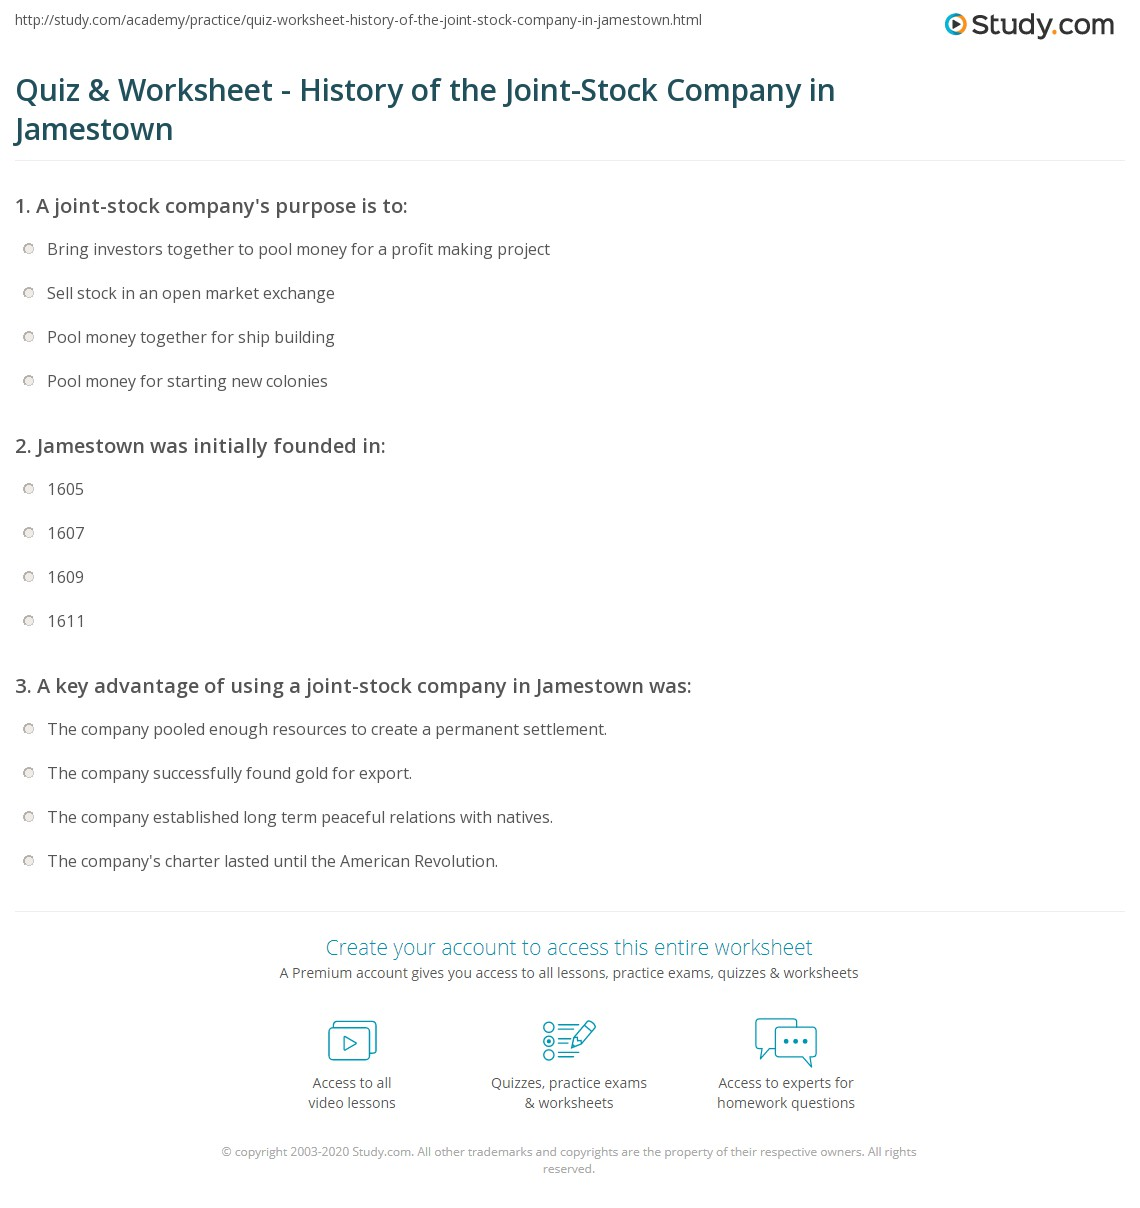 Joint stock company - Print Joint Stock Company In Jamestown History Advantages Disadvantages Worksheet